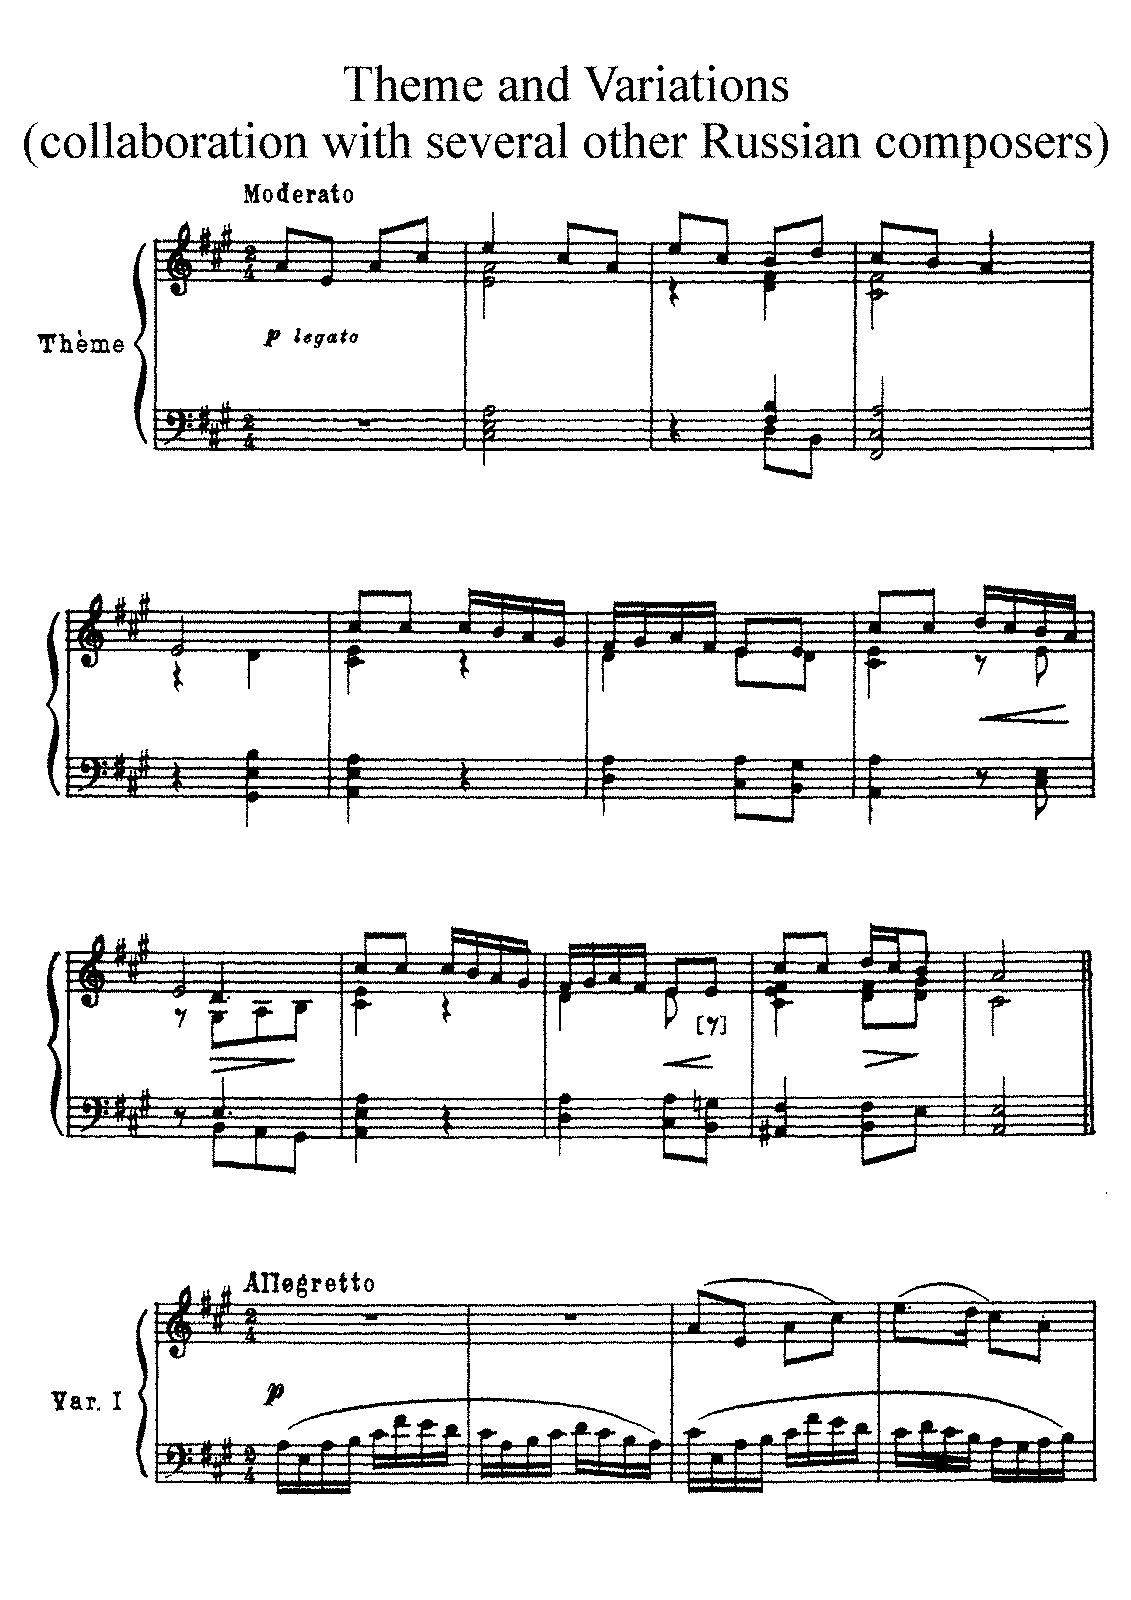 PMLP88681-Rimsky-Korsakov-Theme-and-single-Variation-Excerpt-of-a-set-by-various-Composers.pdf